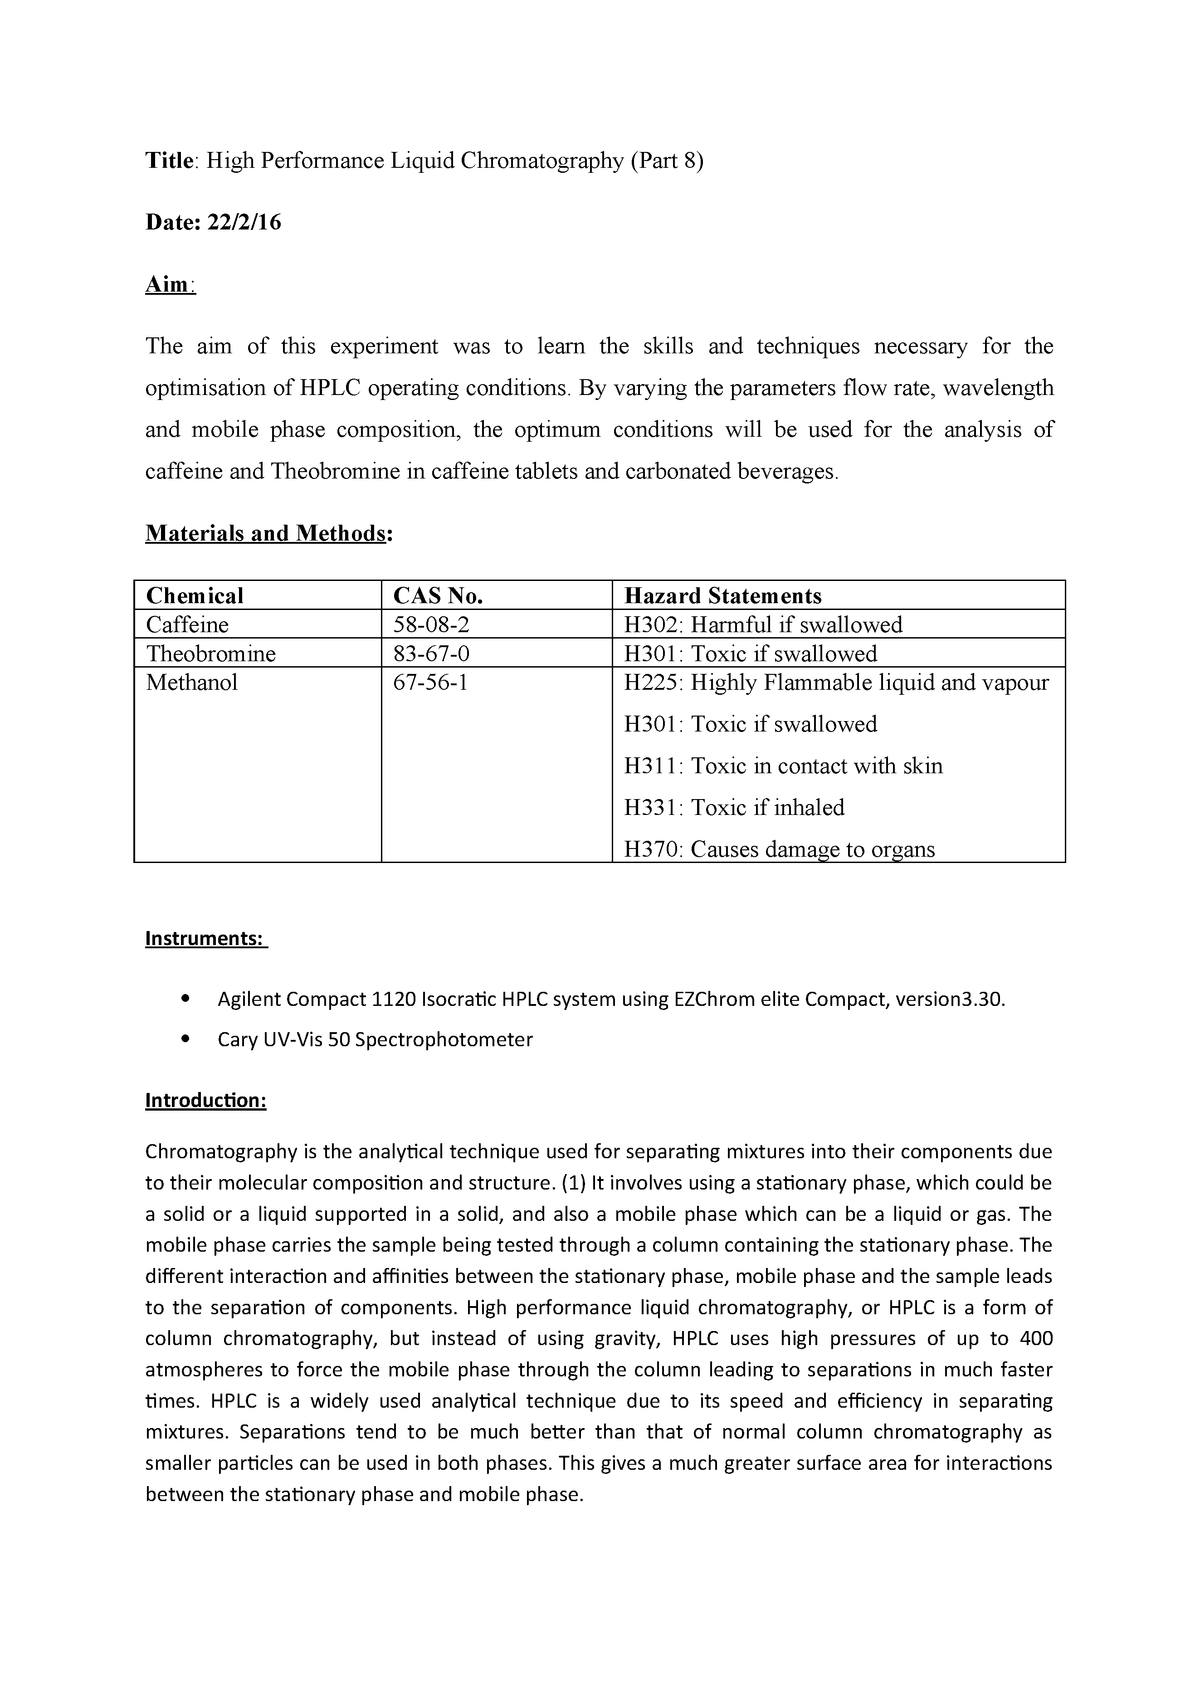 Essay writing practice for ged